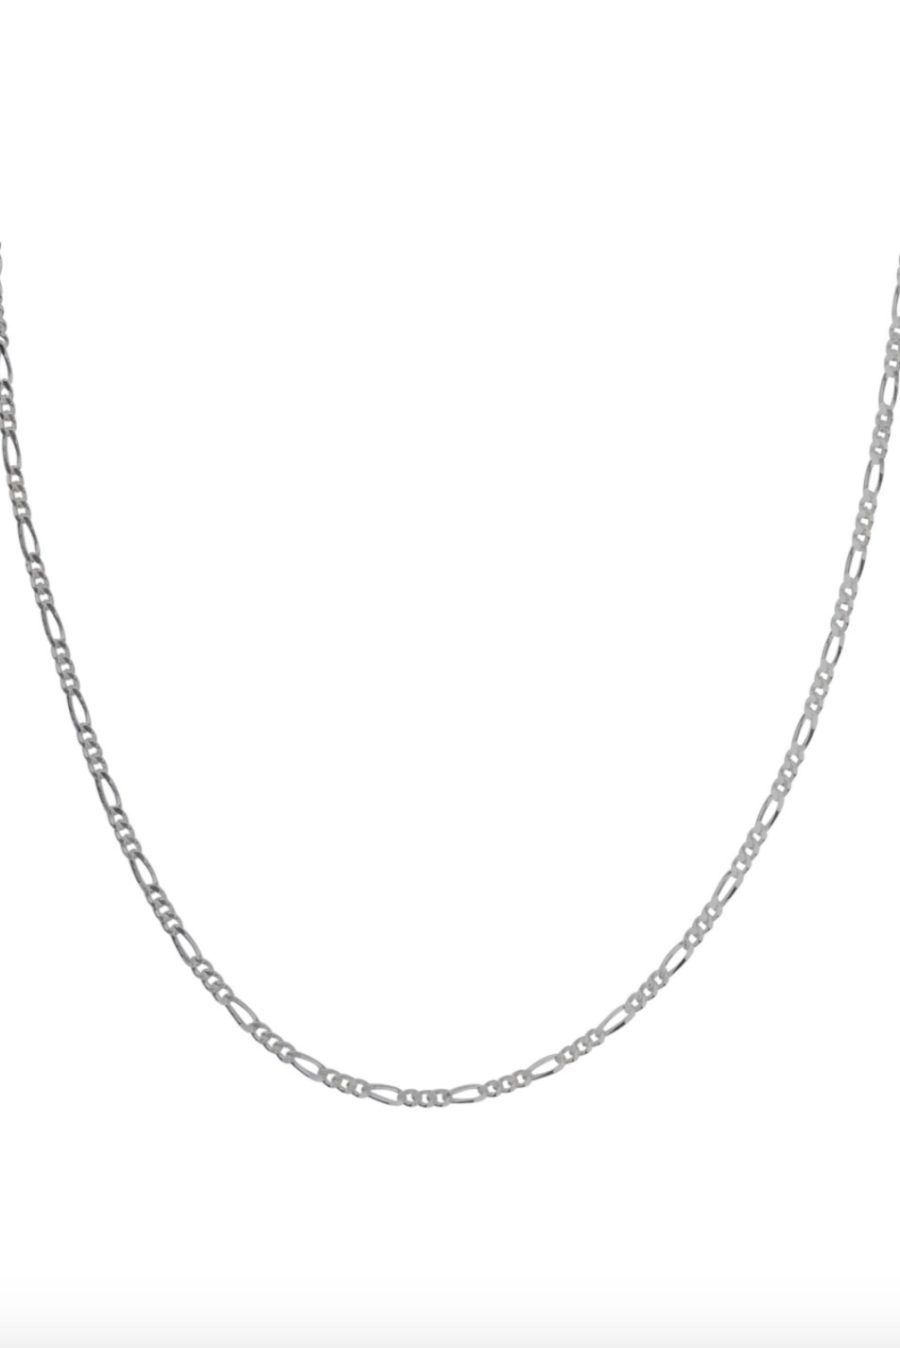 T.I.T.S. - Vintage Chain, Silver